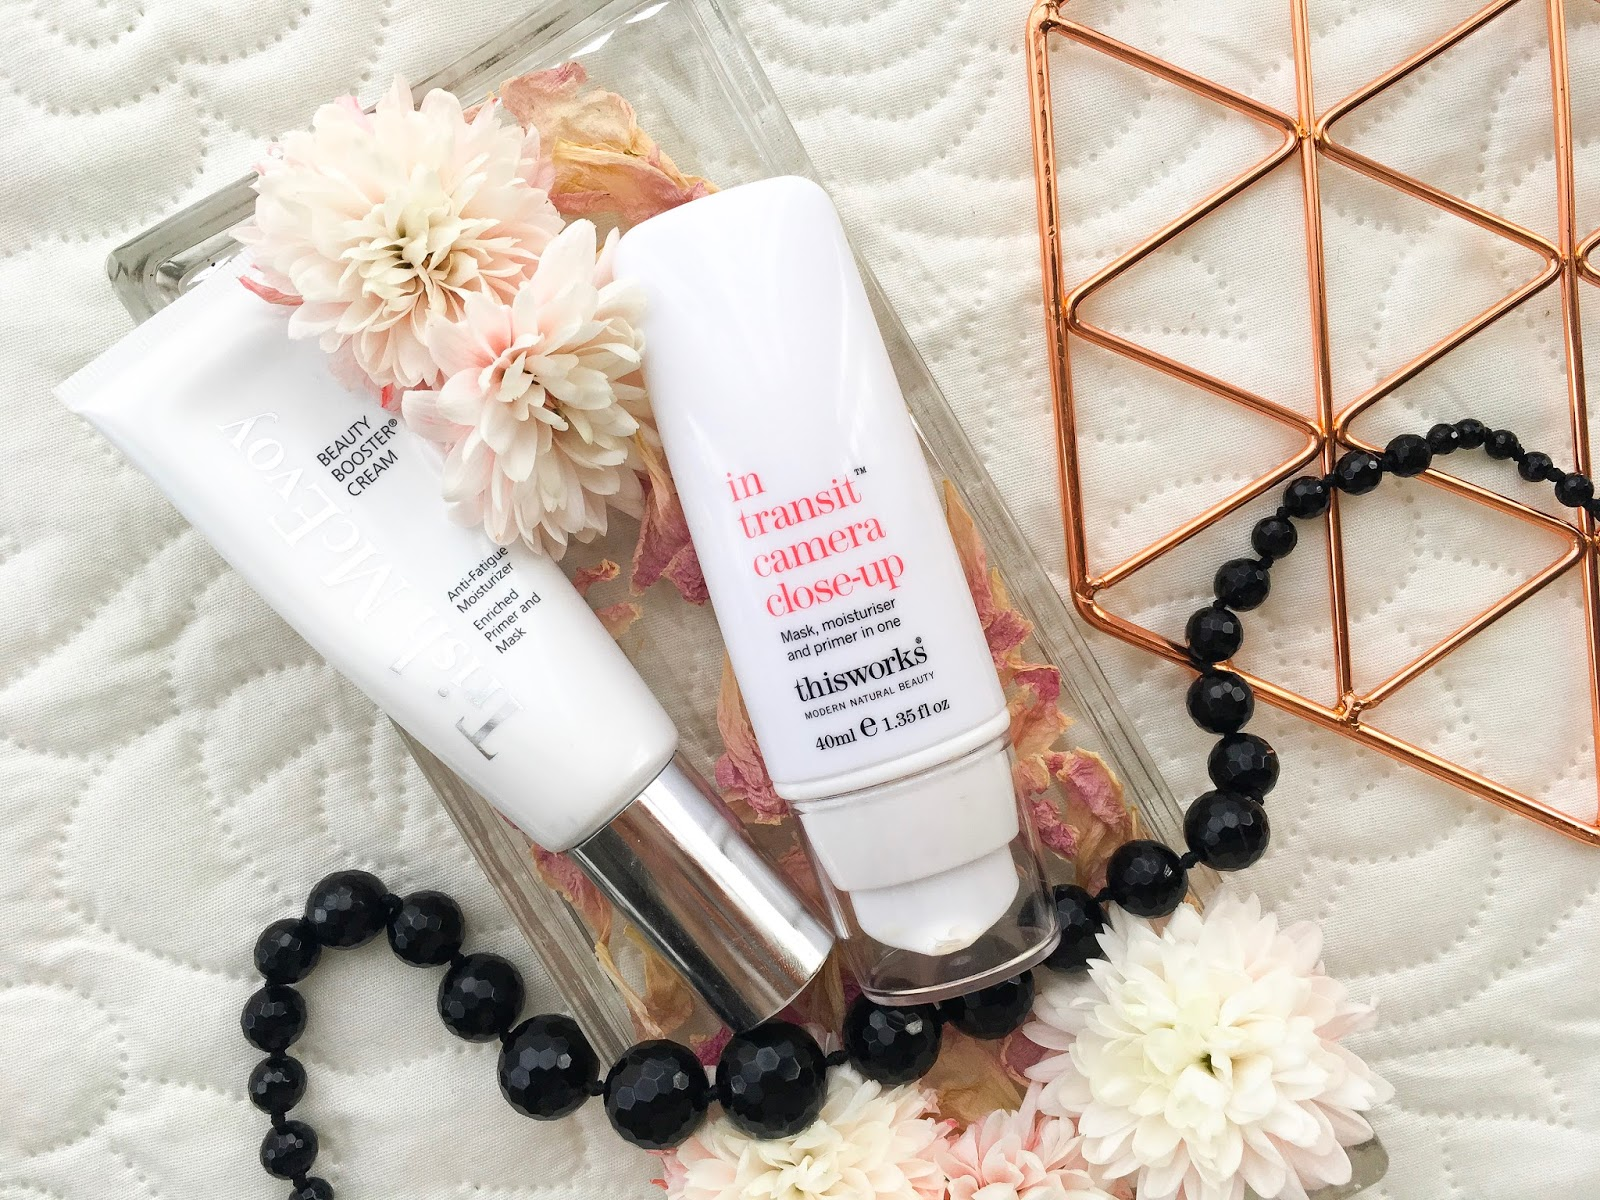 best hydrating primers for winter, this works in transit camera close up primer review, trish mcevoy beauty booster review,